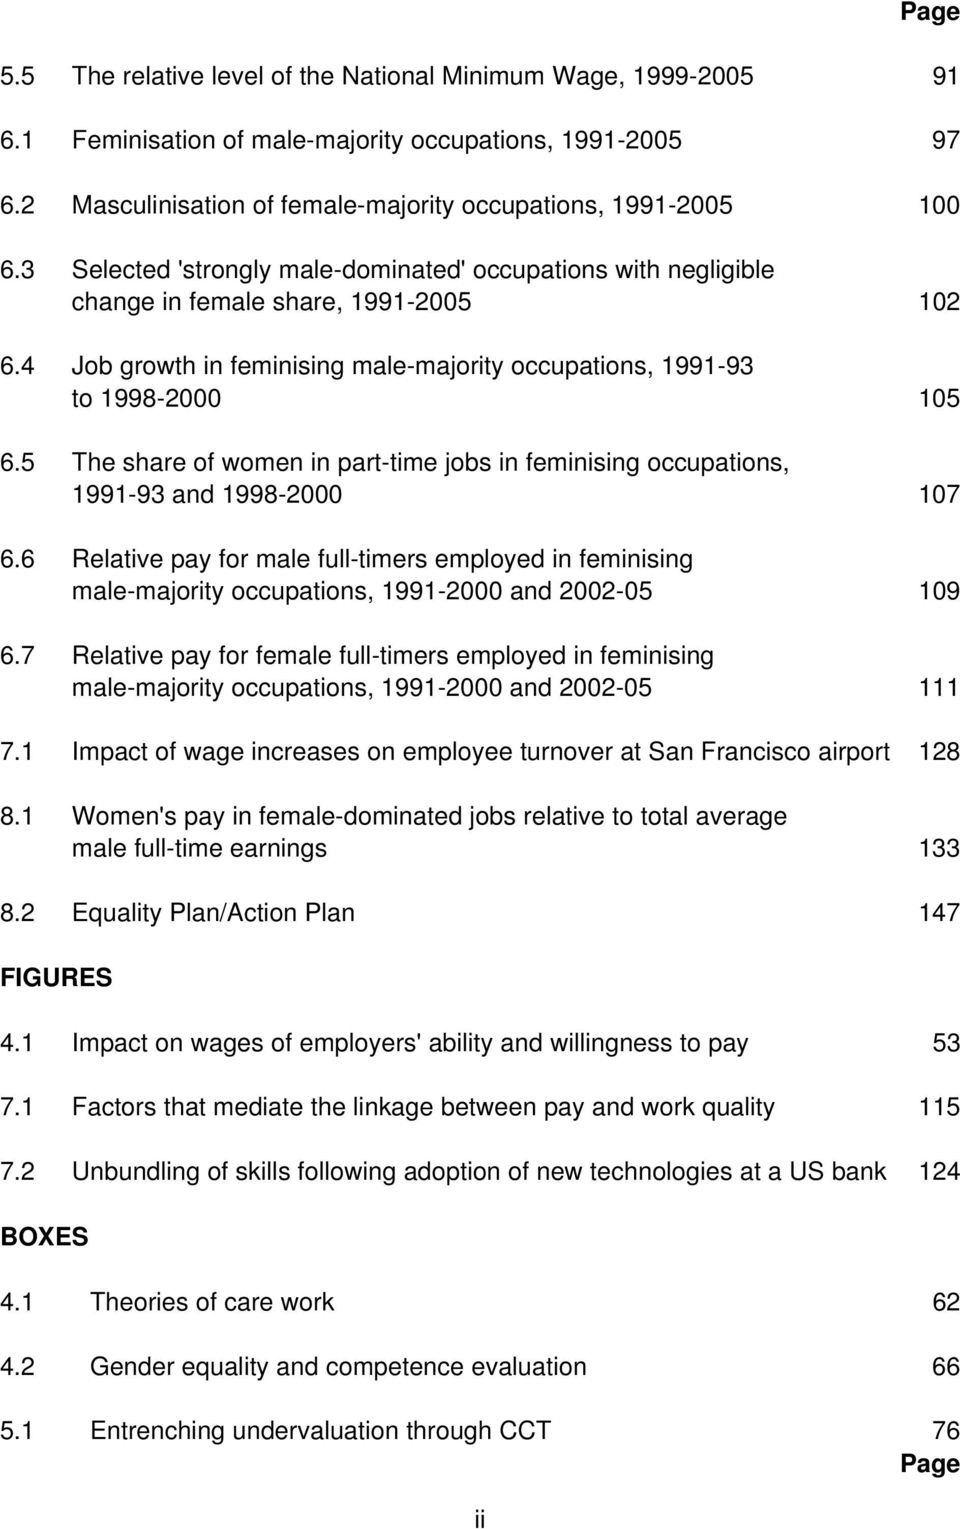 5 The share of women in part-time jobs in feminising occupations, 1991-93 and 1998-2000 107 6.